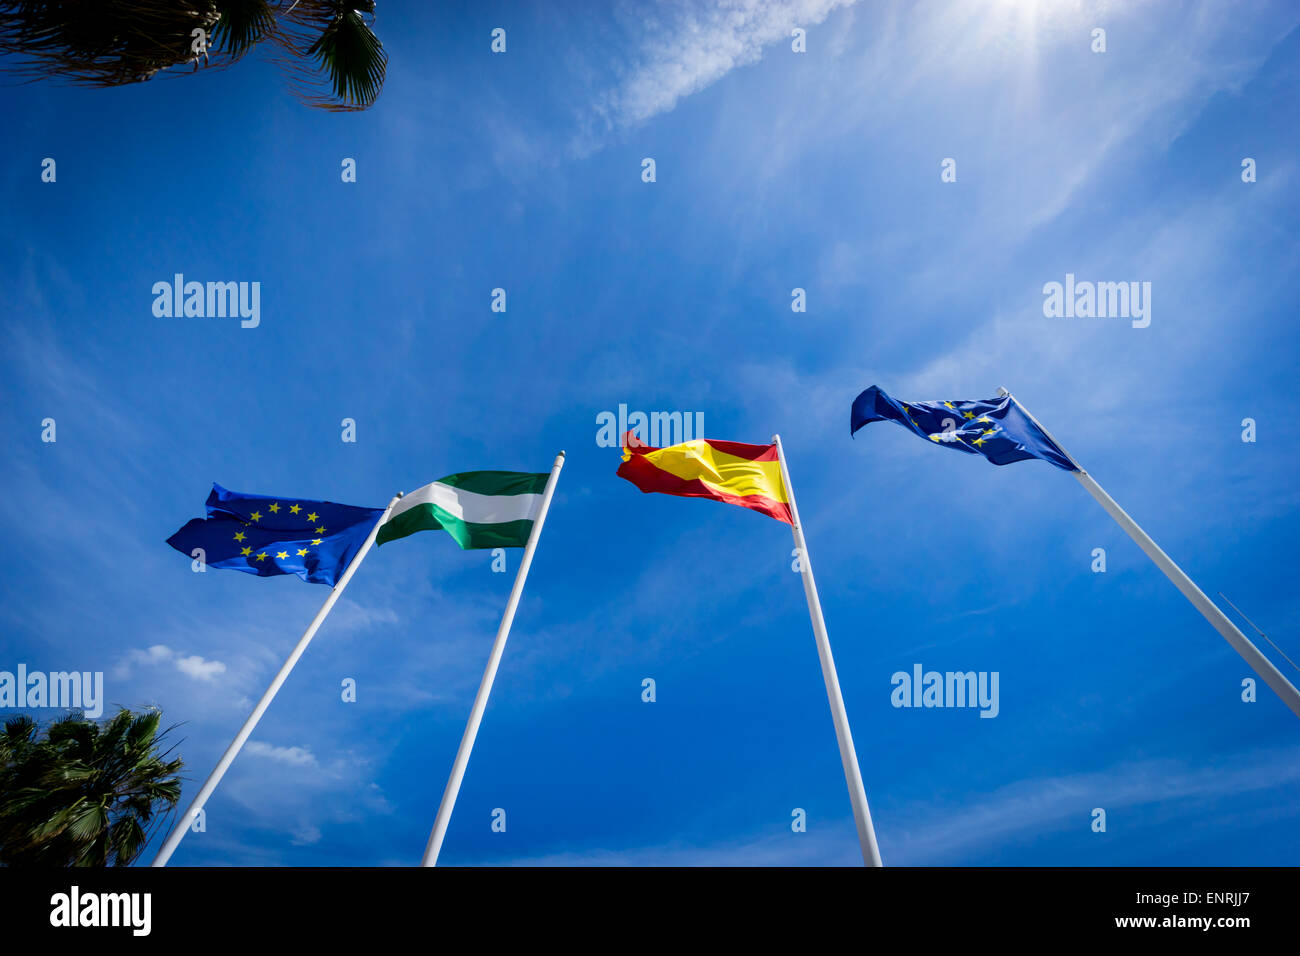 Flags of the European Union, Andalucia, and Spain seen flying in Torremolinos, Spain against a blue sky - Stock Image